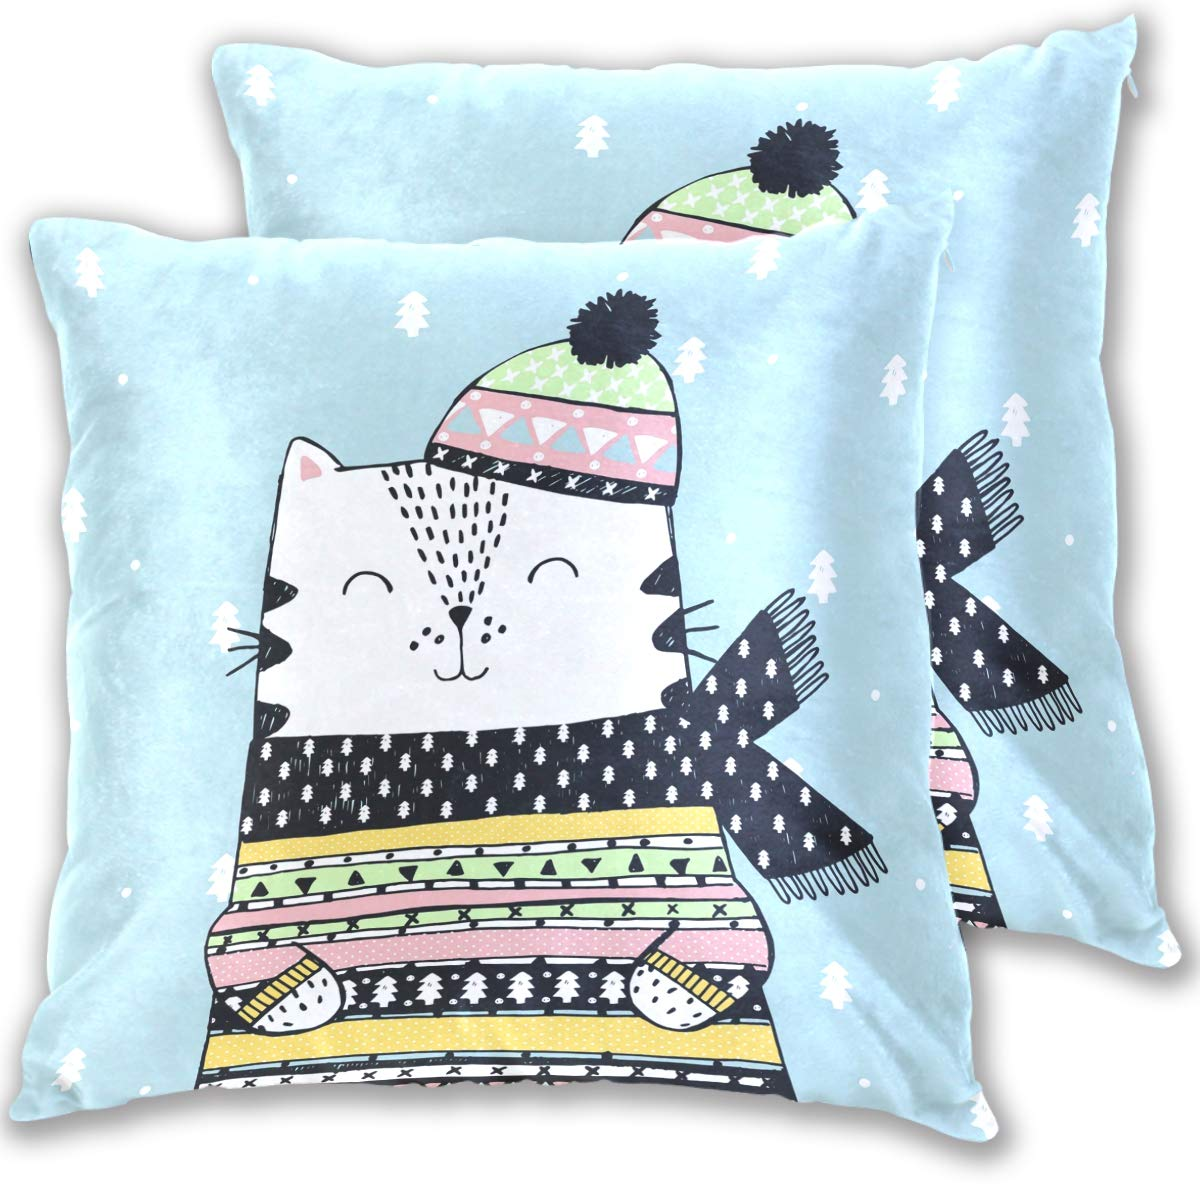 Groovy Amazon Com Wamika Winter White Cat Cap Pillowcase Pillow Gmtry Best Dining Table And Chair Ideas Images Gmtryco